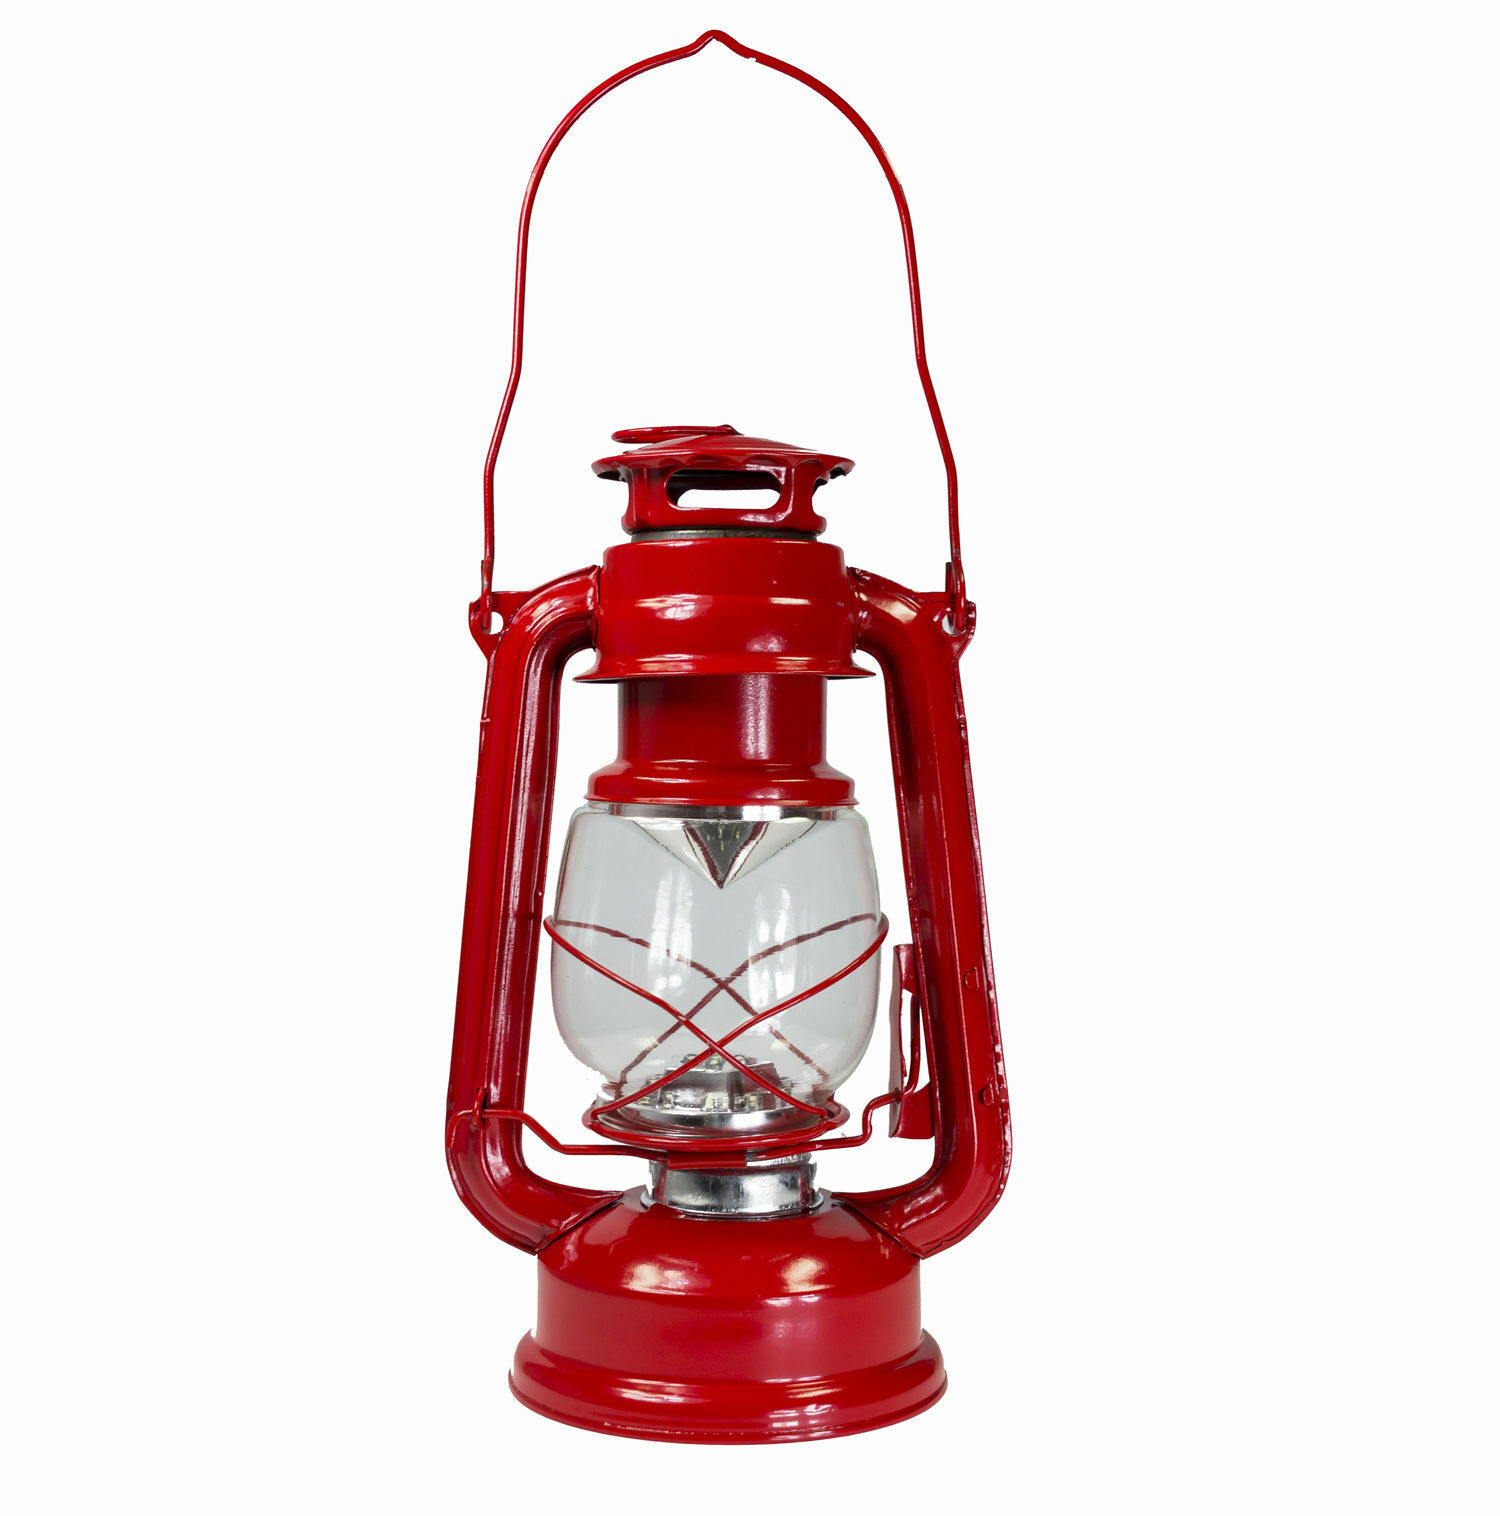 Dimmable portable ouragan lanterne lampe 15 led camping camping camping tente transporter lampe ~ rouge 908522